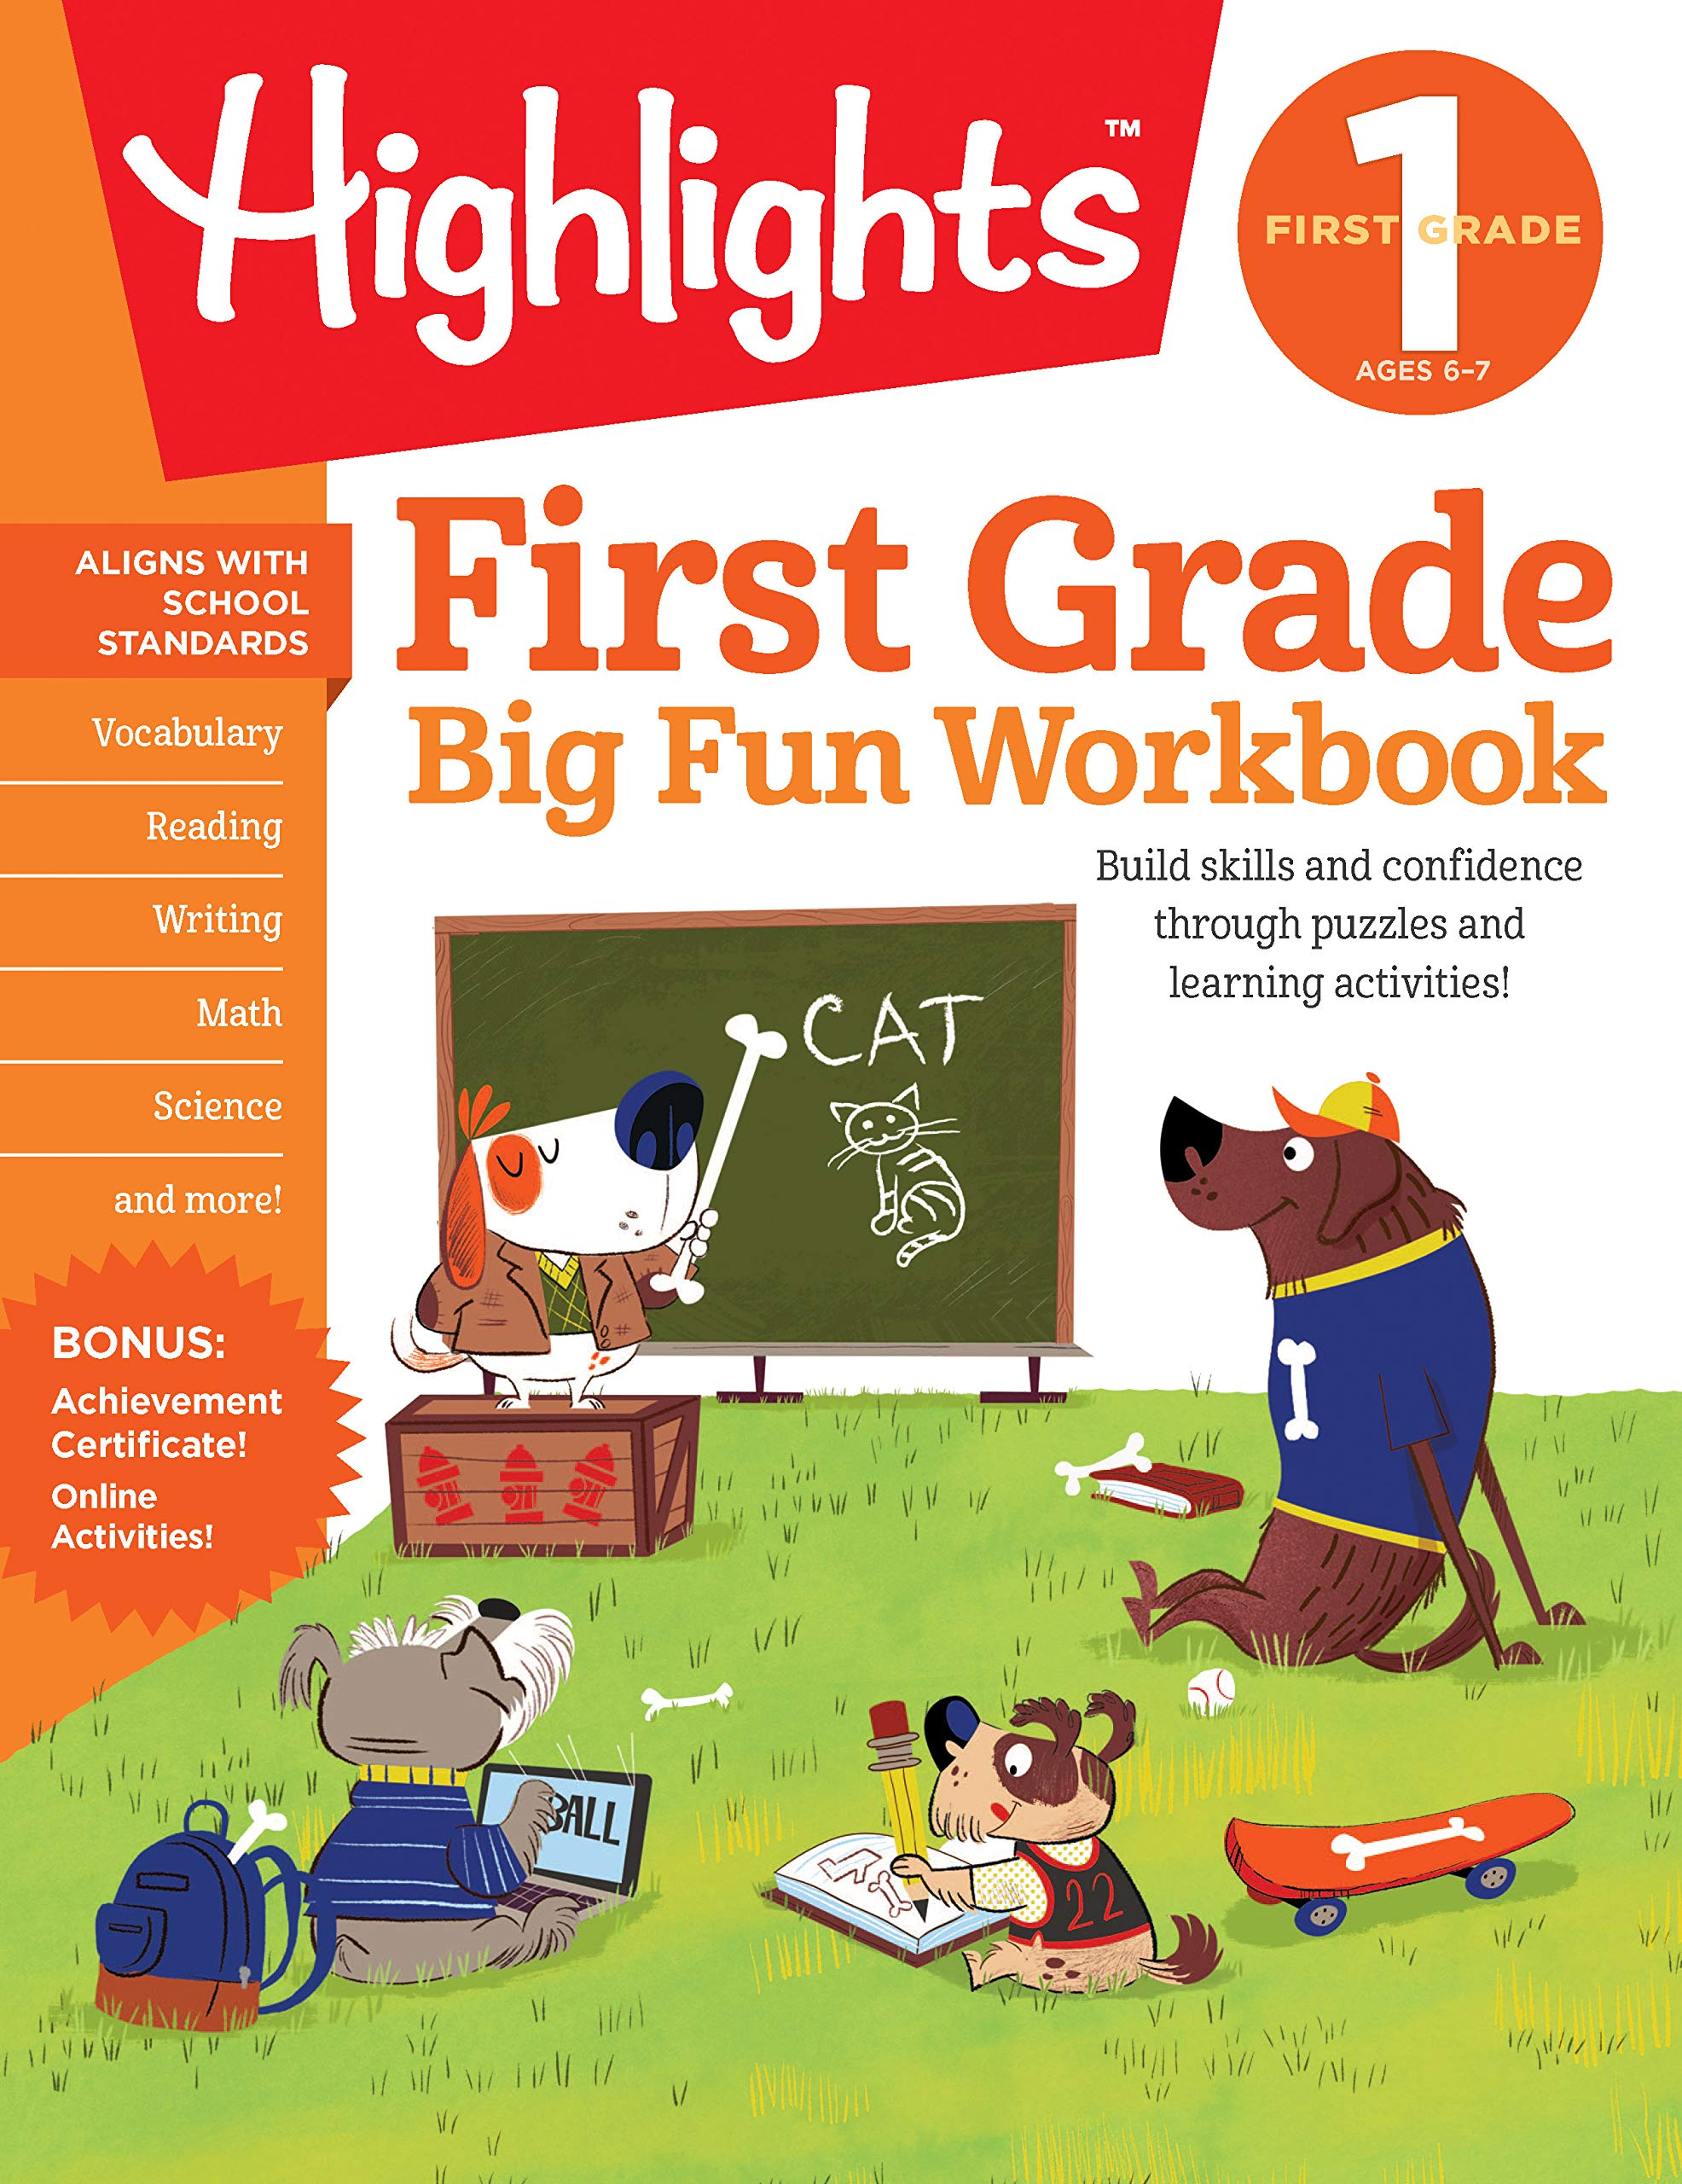 First Grade Activity HighlightsTM Workbooks product image